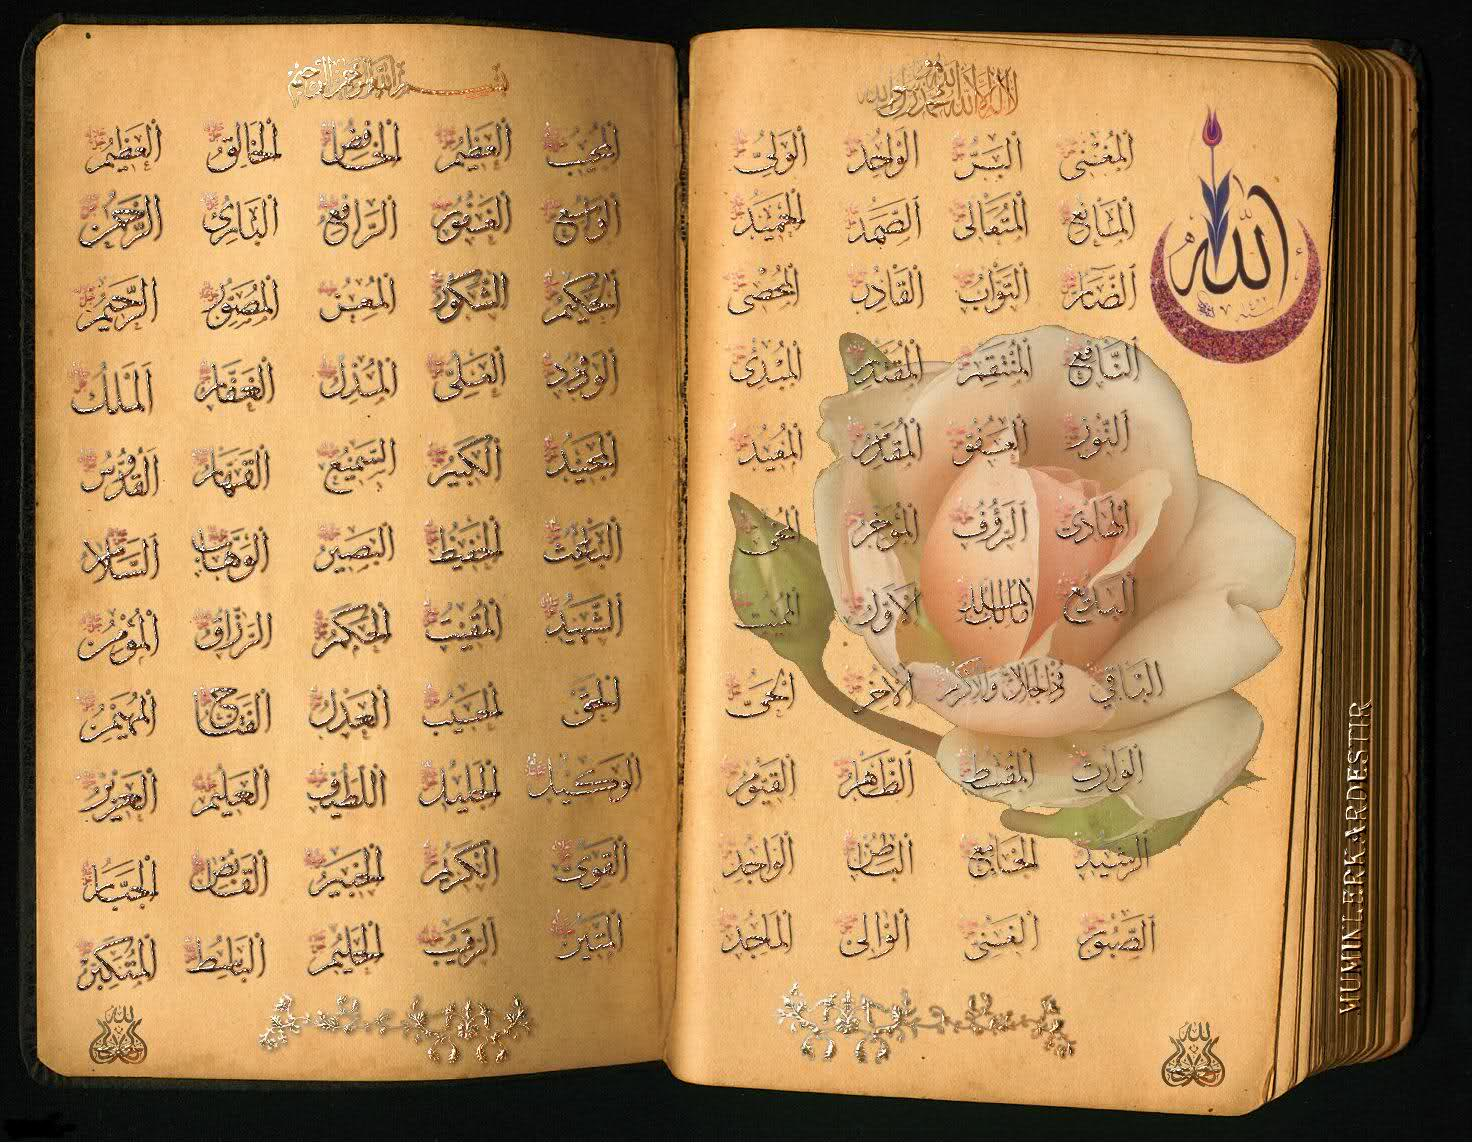 99 names of allah 99namesofallahorg is only to provide all the information about 99 names of allah and names of muhammad pbuh, we are also providing all hadith books in pdf and at the same time all tafseer books in many languages.